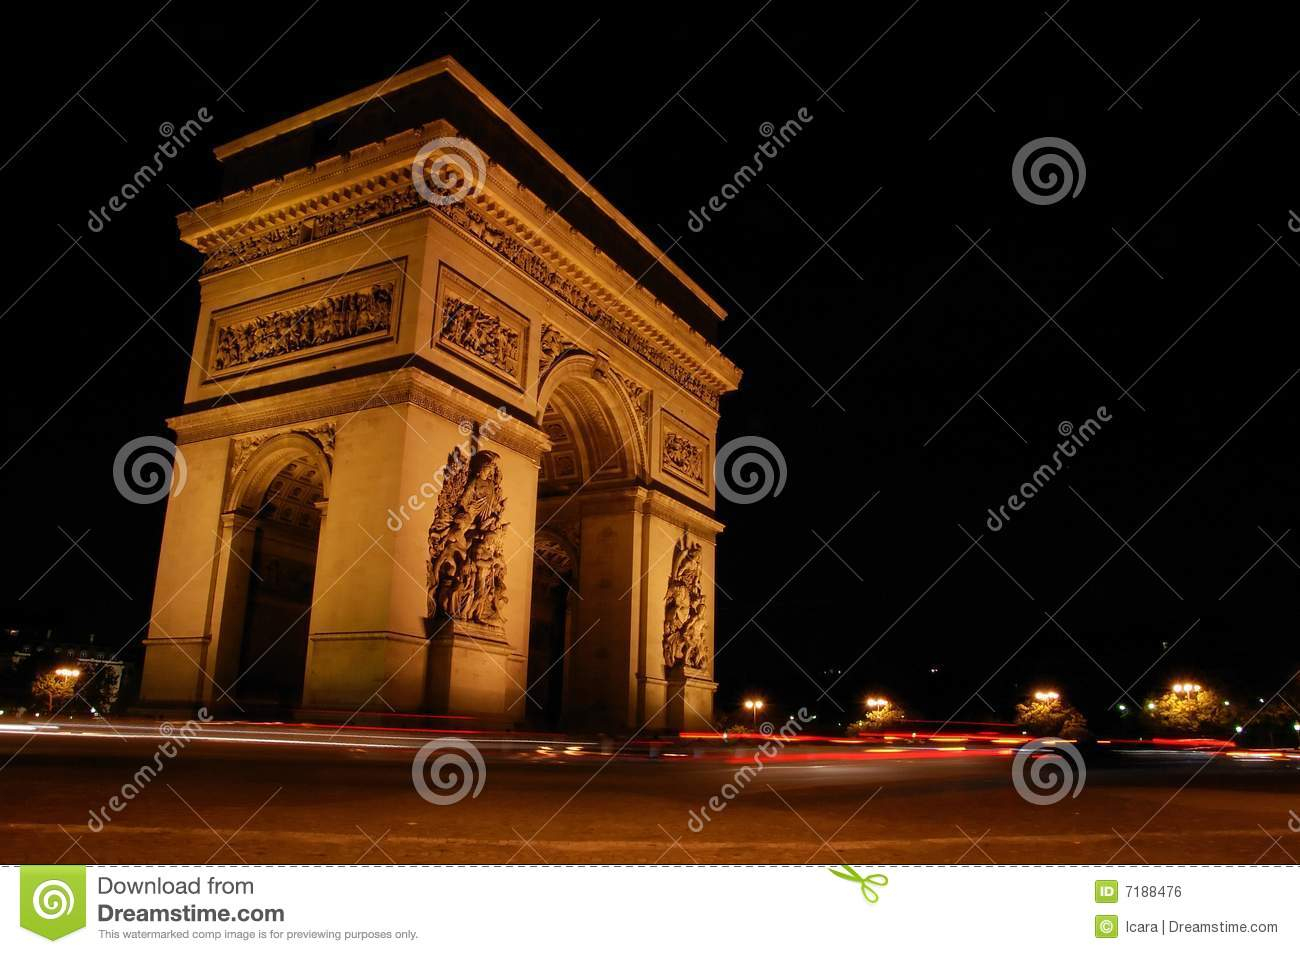 Arc de night scene triomphe